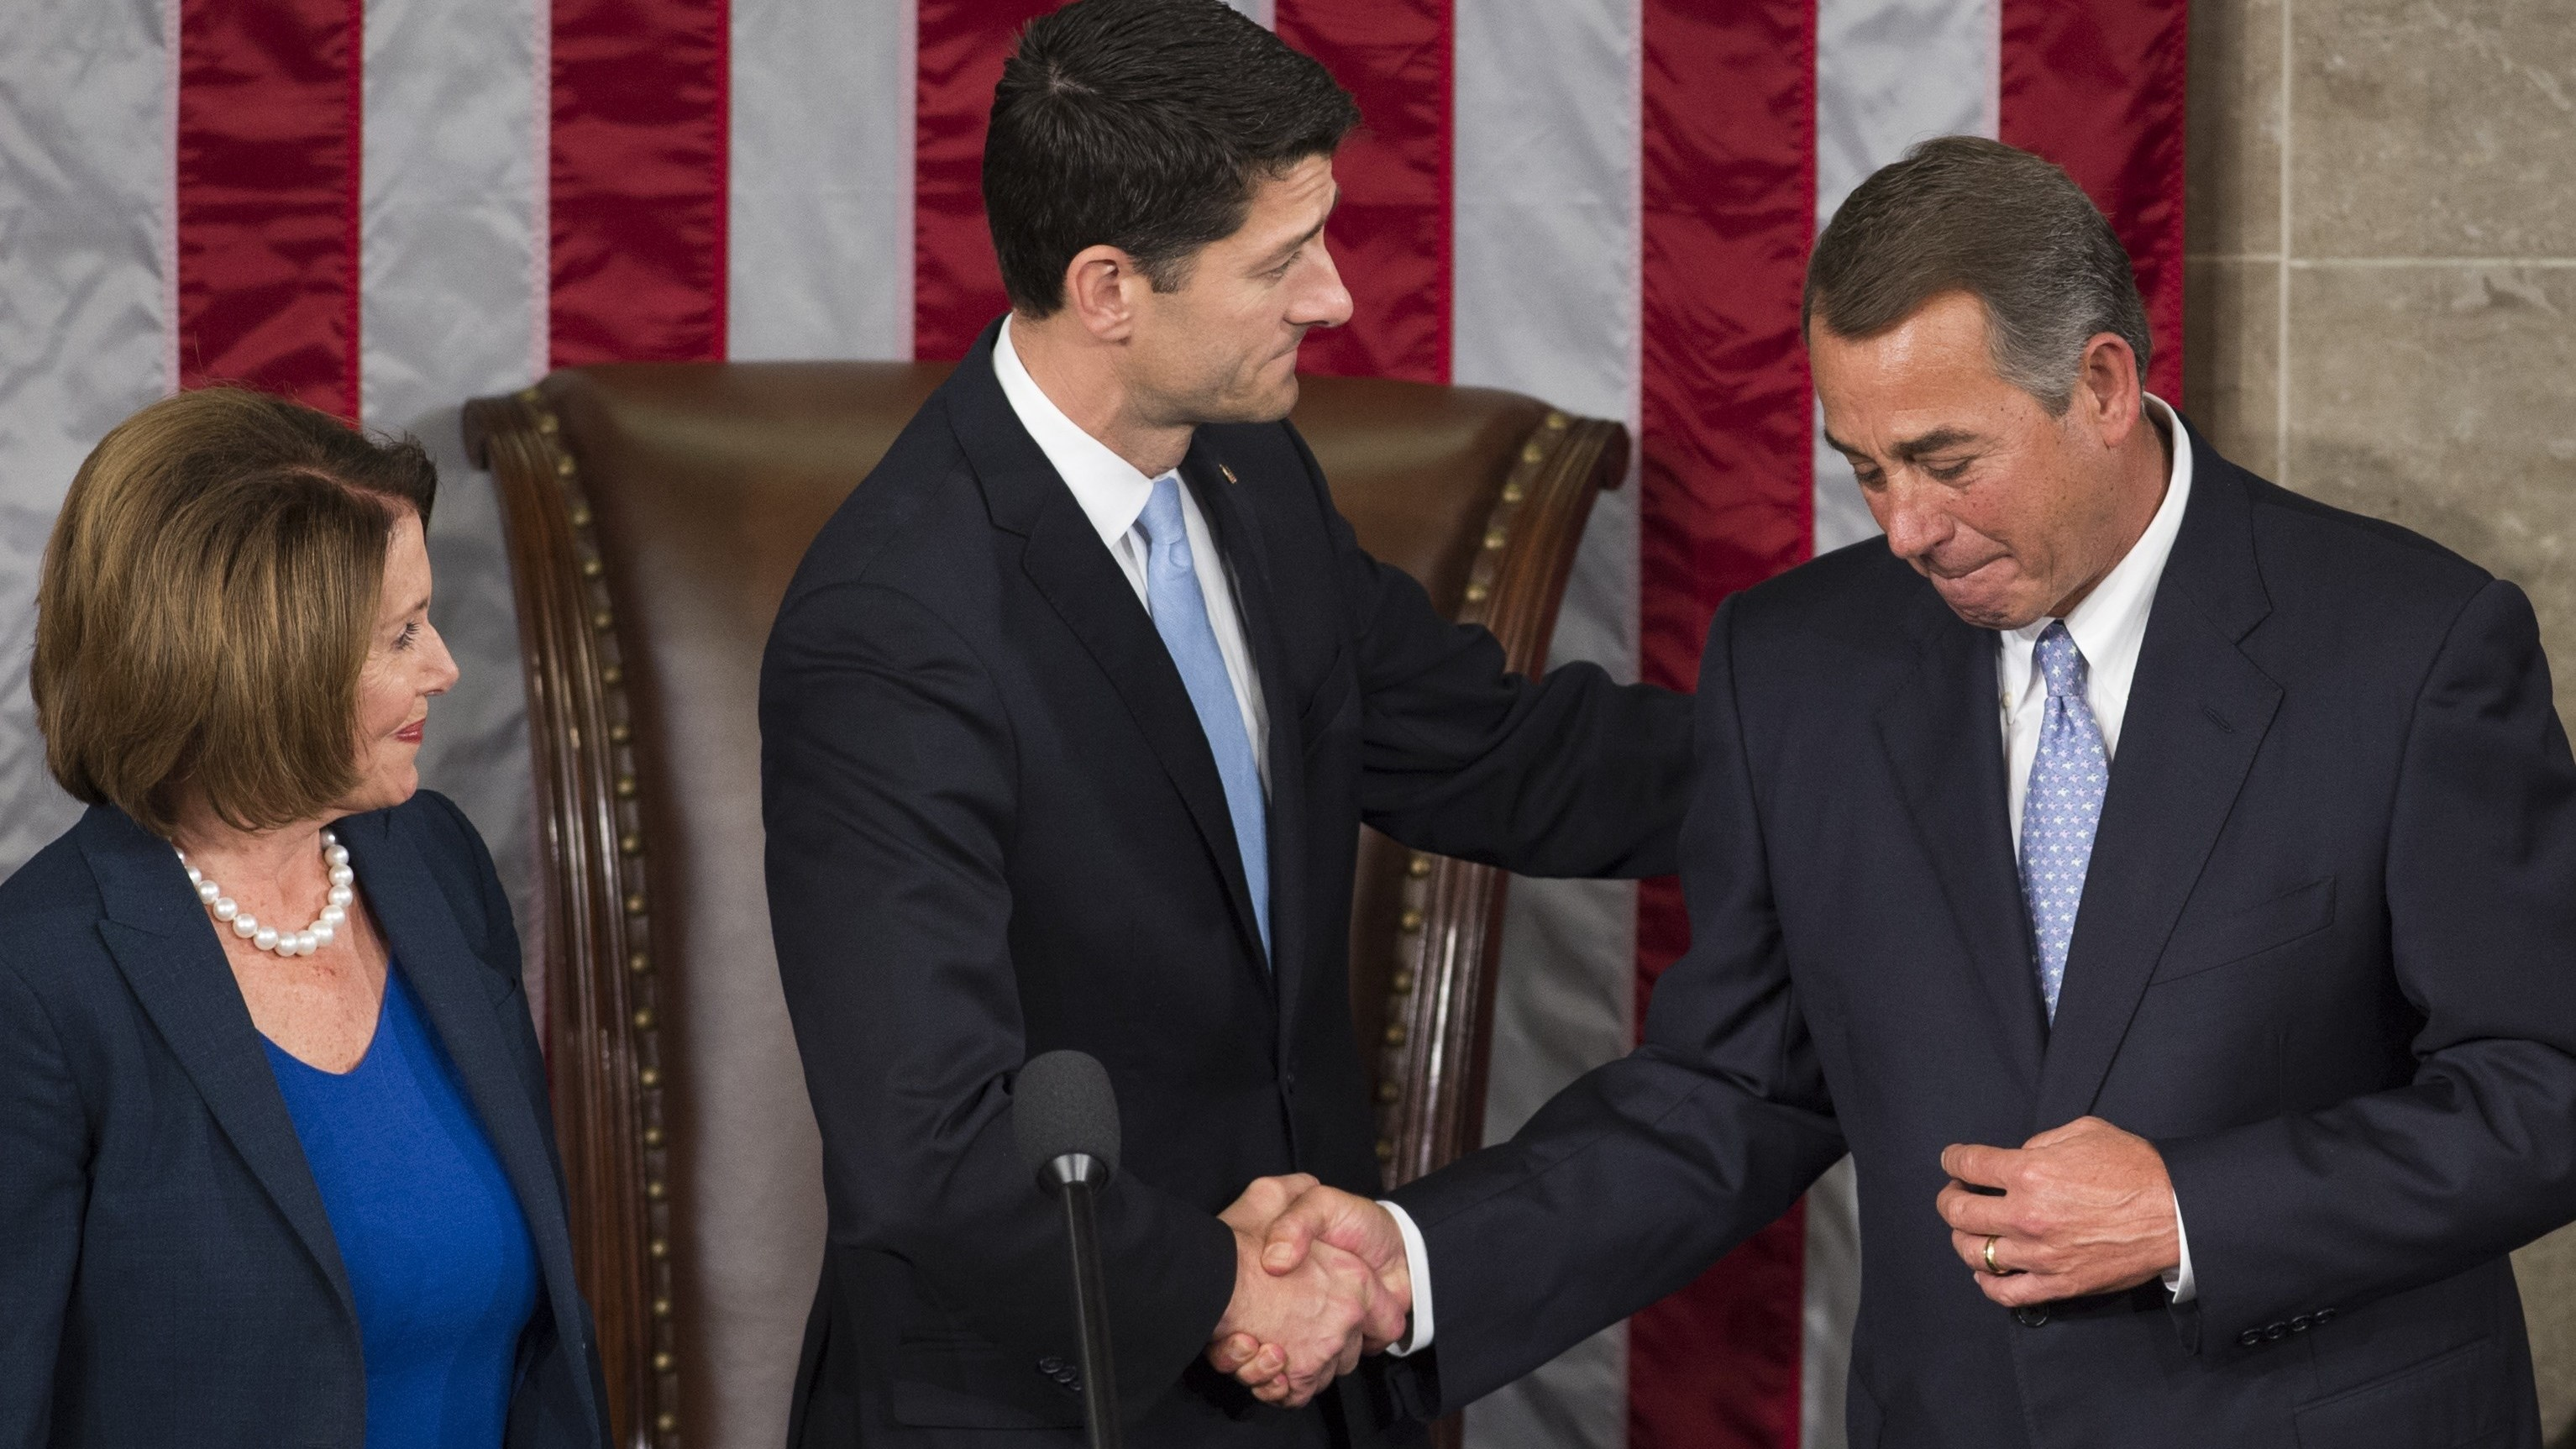 Then newly elected Speaker of the House Paul Ryan shakes hands with outgoing Speaker John Boehner alongside House Democratic Leader Nancy Pelosi at the U.S. Capitol in Washington, D.C., Oct. 29, 2015.